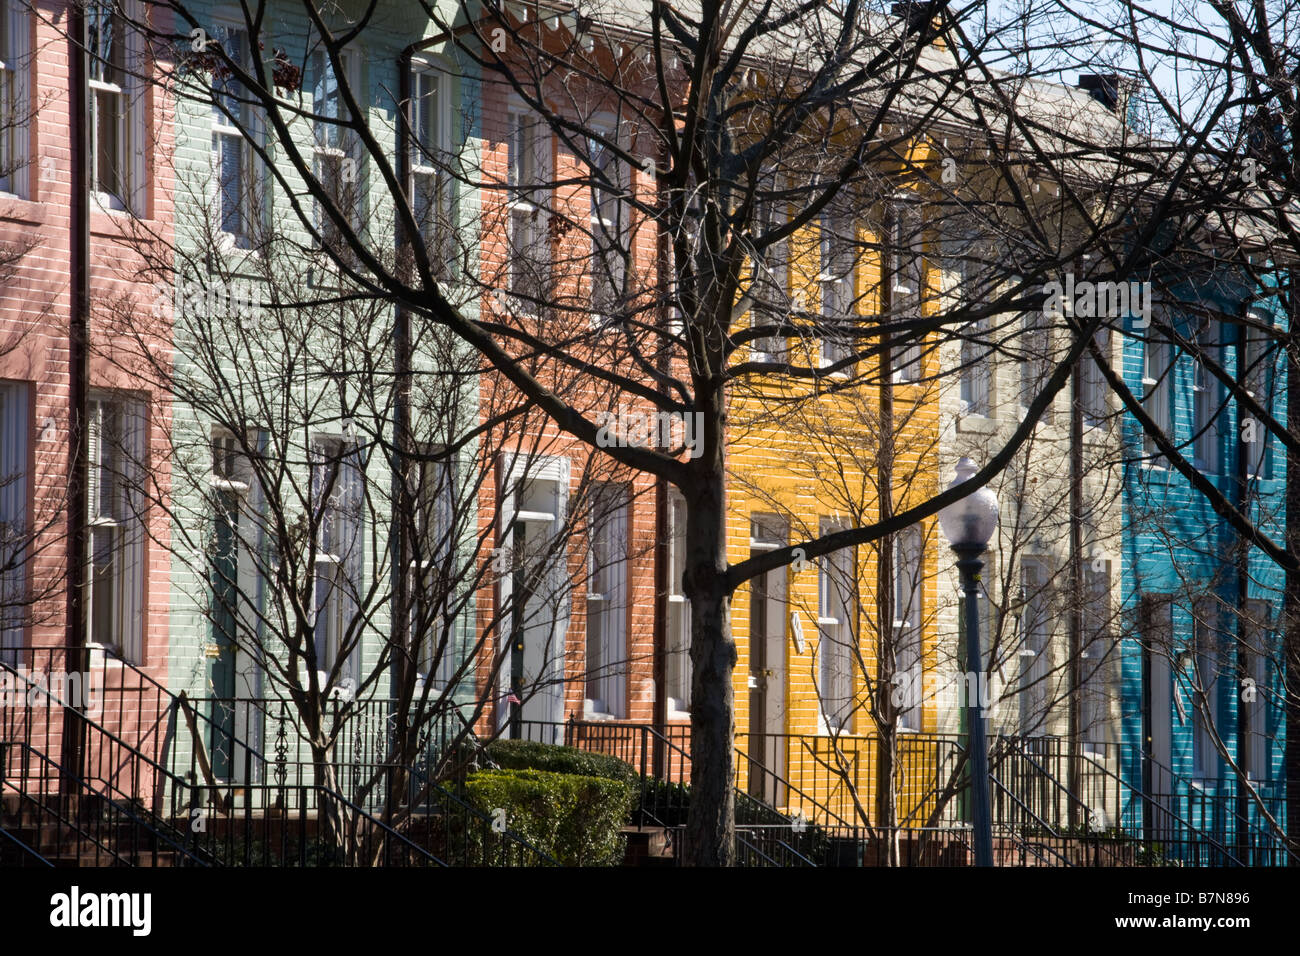 Colorful row houses Georgetown Washington D.C. - Stock Image